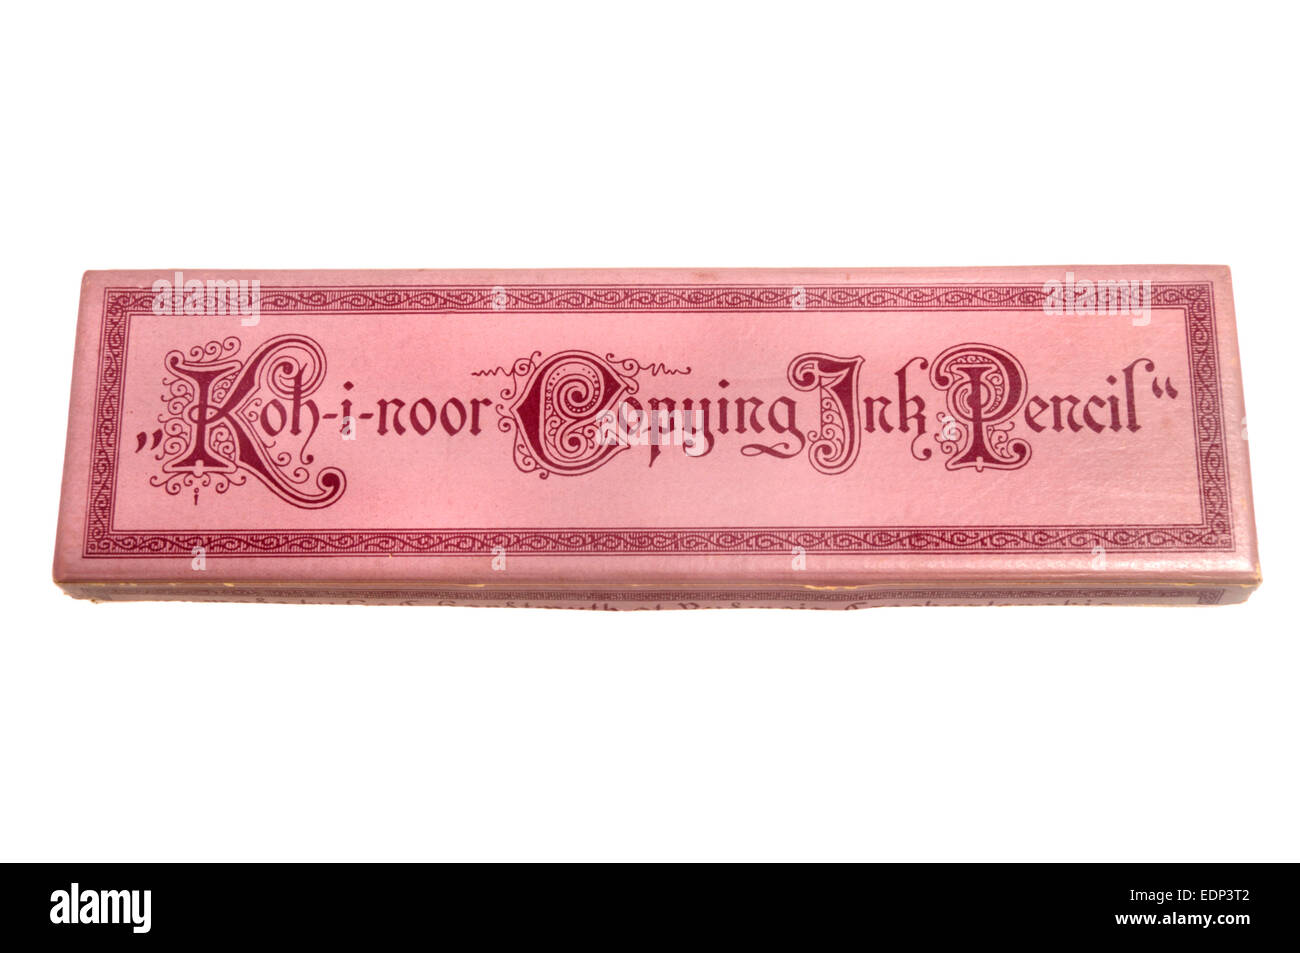 Box of Koh-i-noor Copying Ink Pencils made by L & C Hardtmuth, Czechoslovakia, 1970s - Stock Image